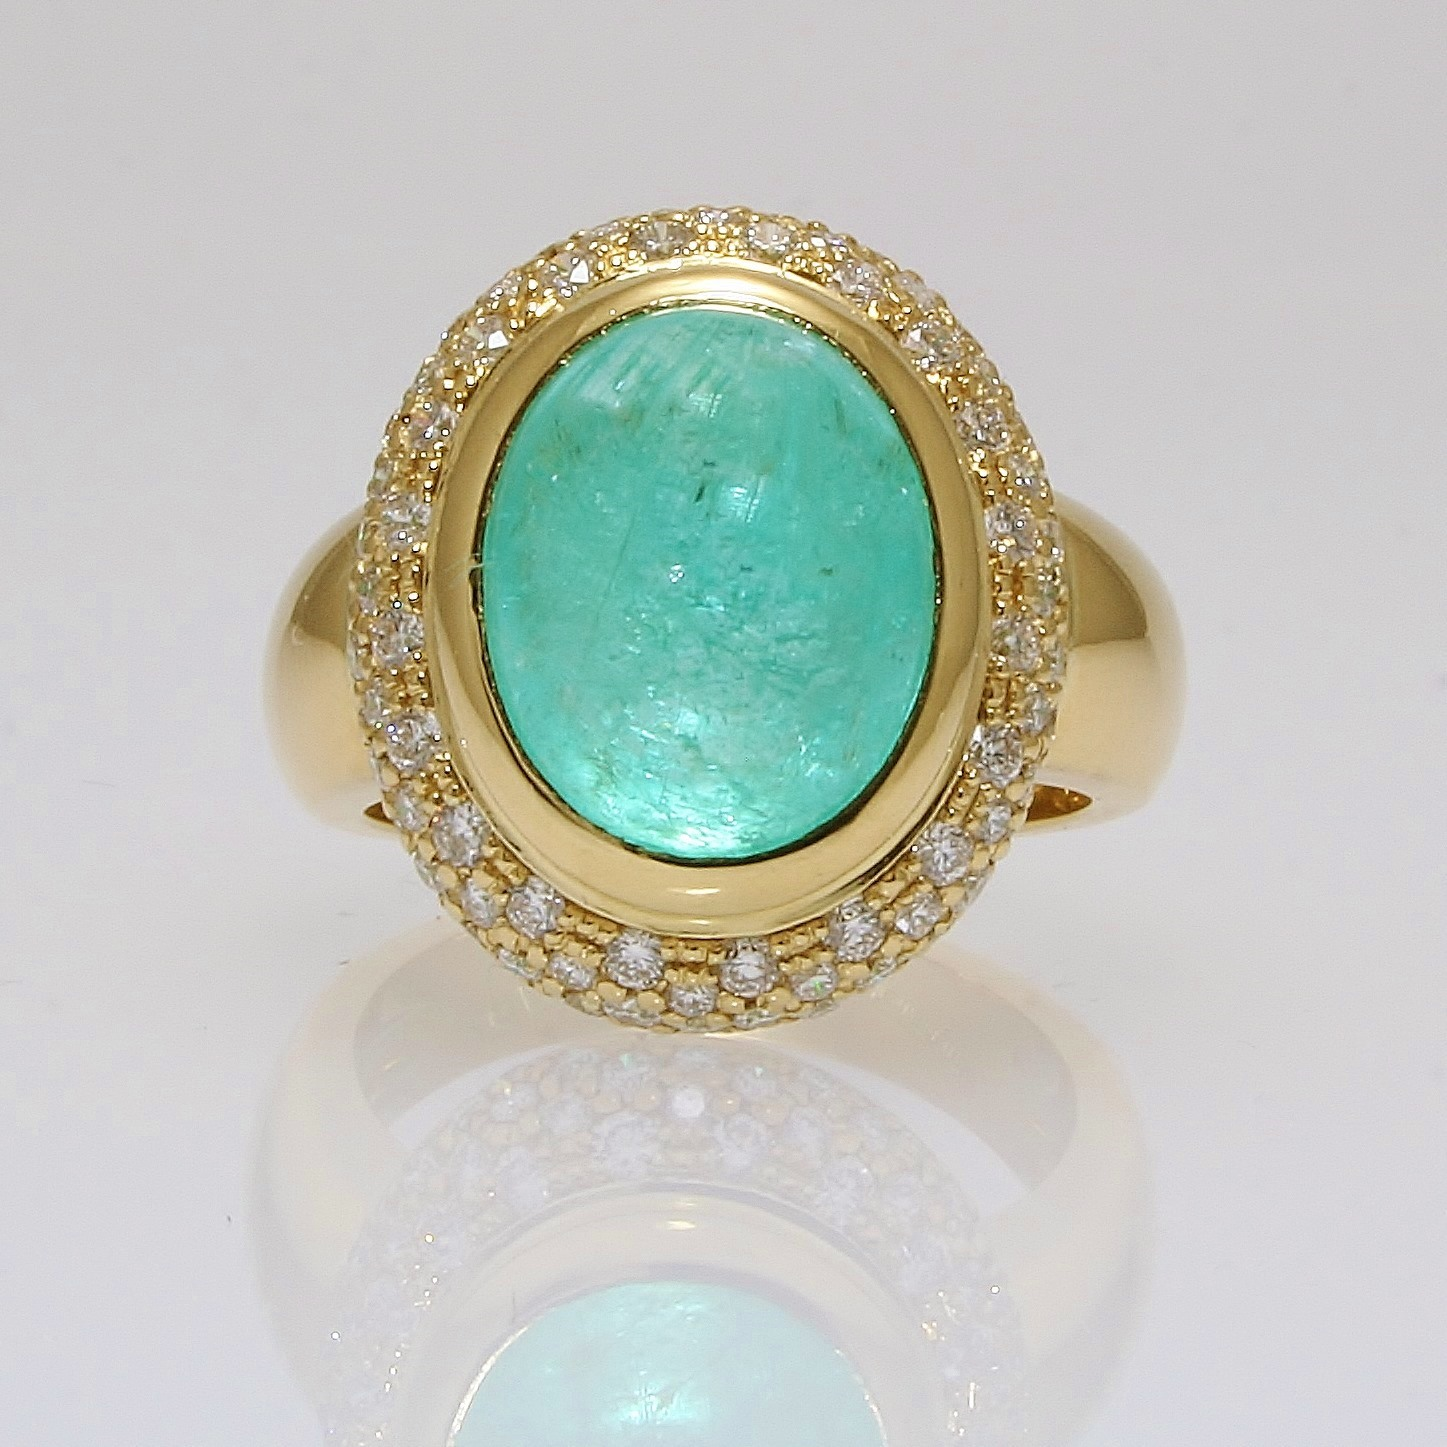 Paraiba Tourmaline Amp Diamond Ring By Furr Amp Co Furr Amp Co